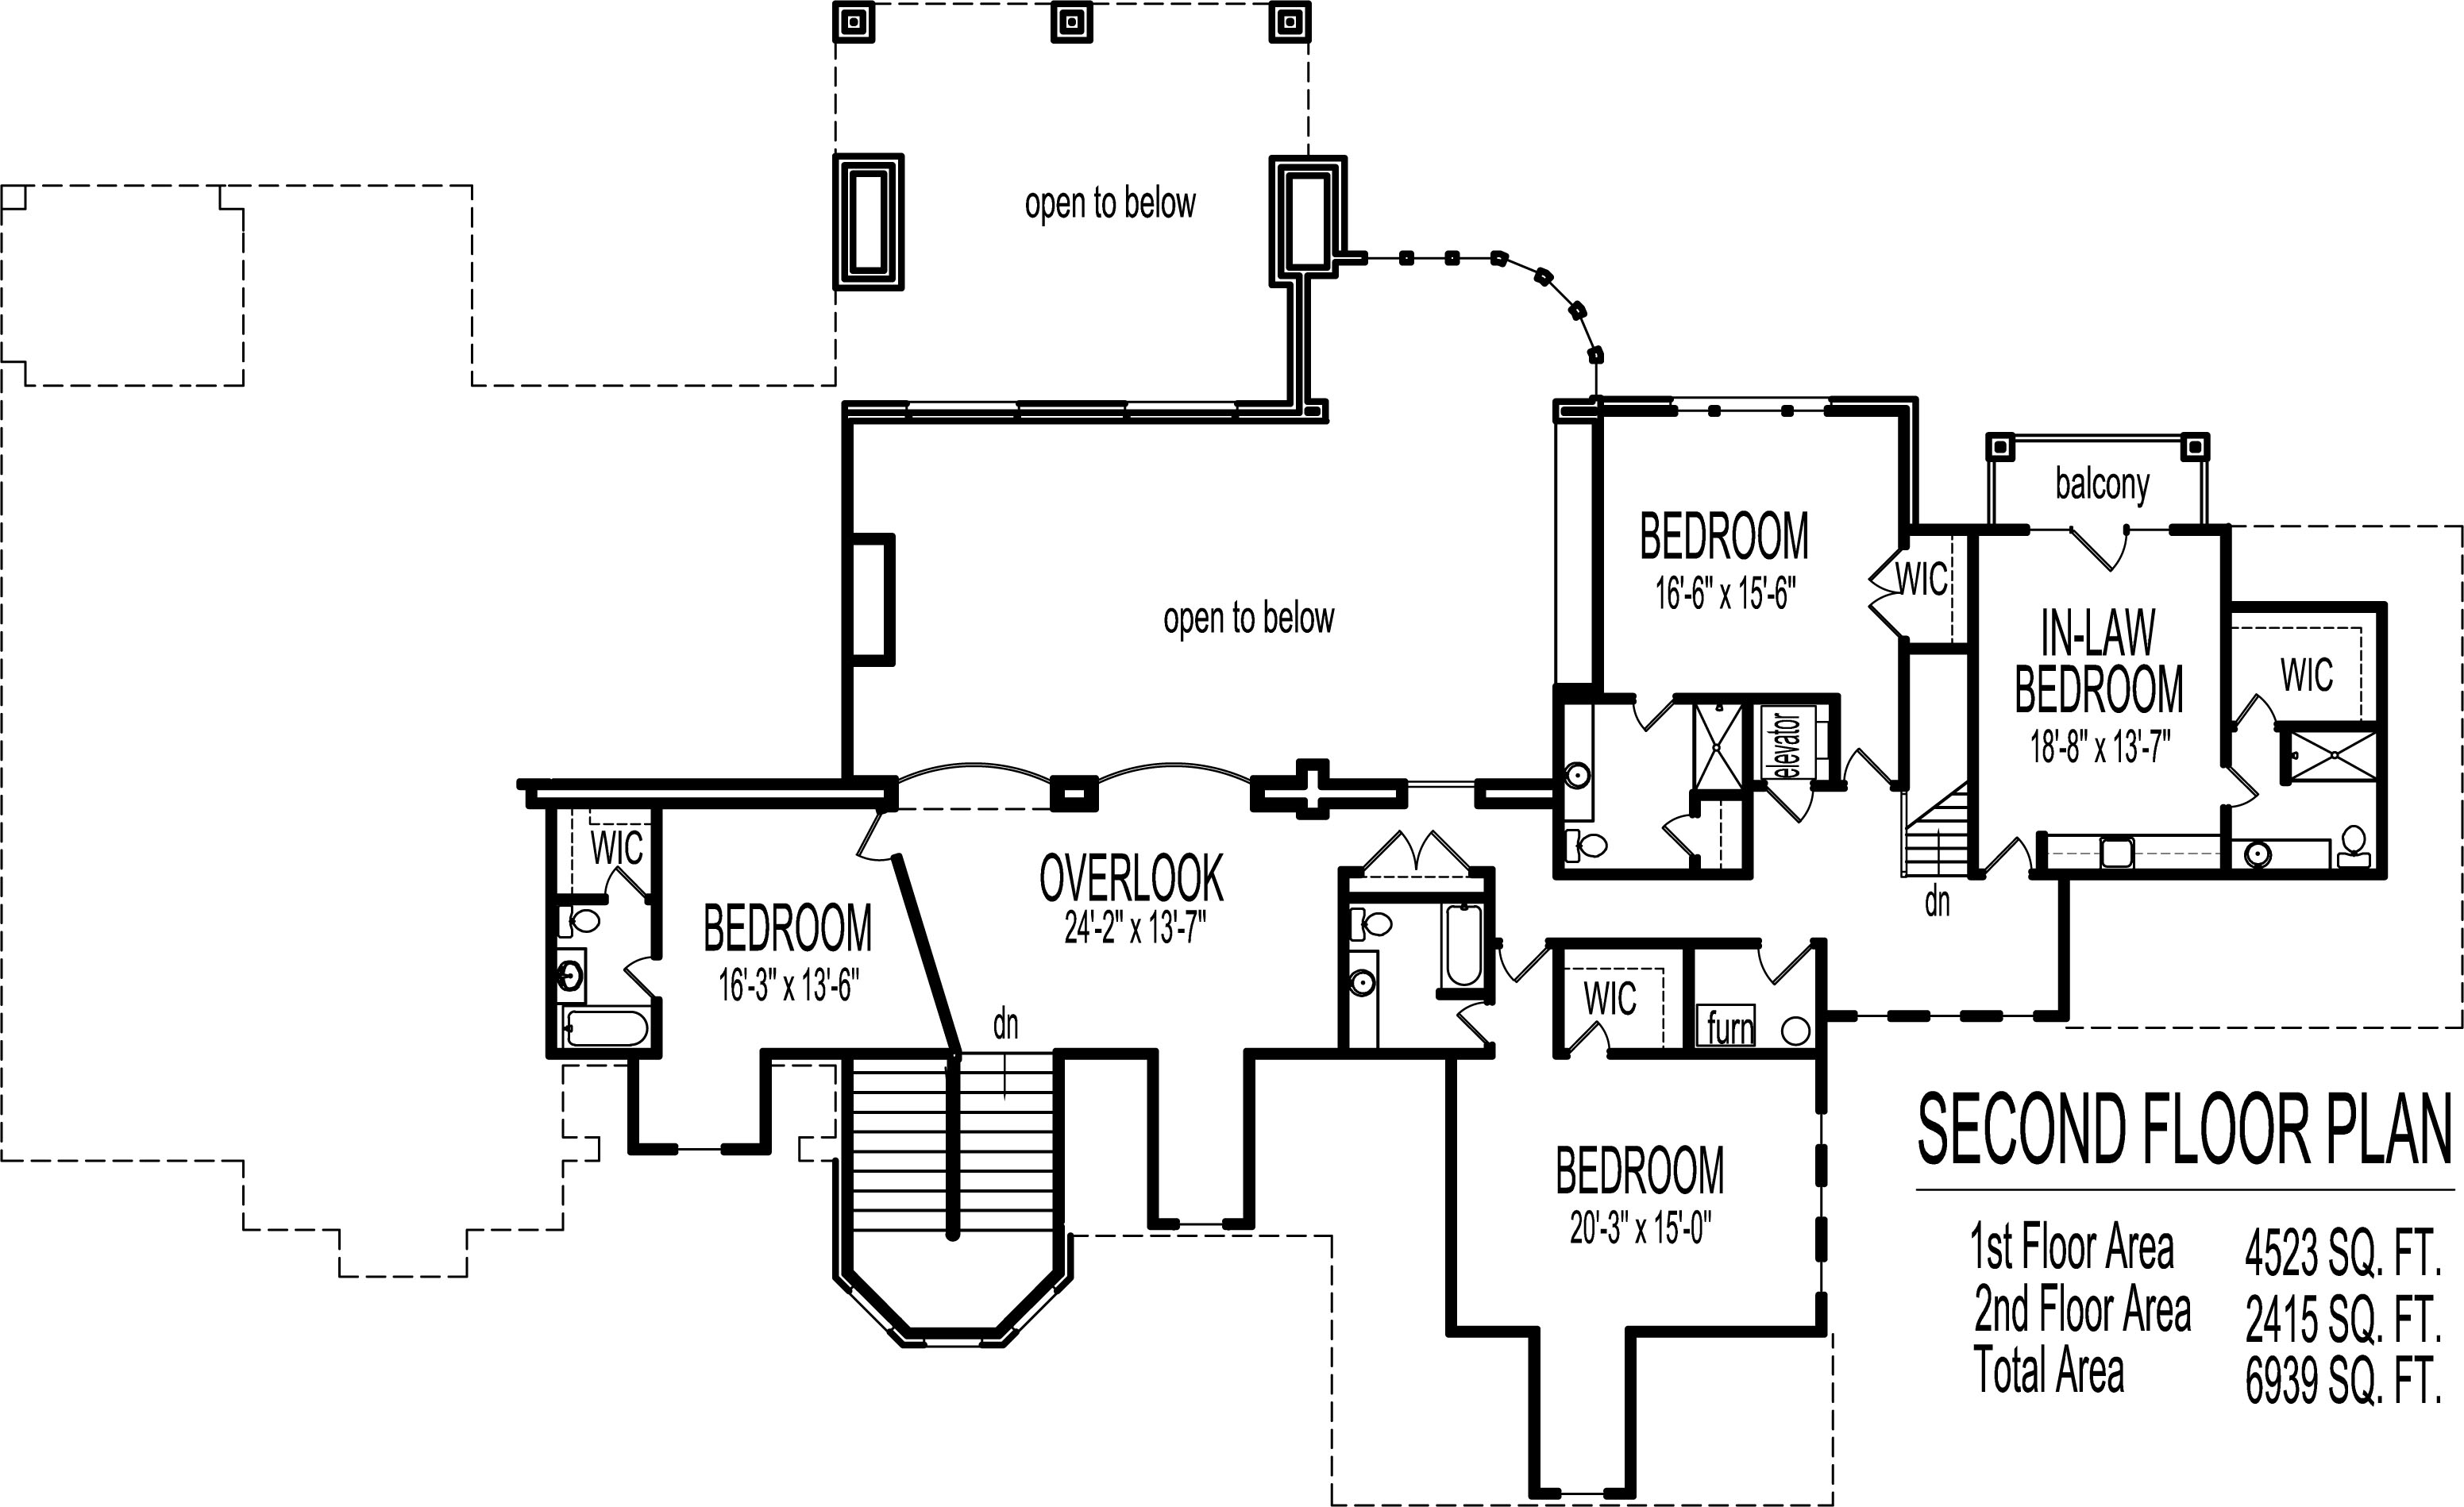 Dream house floor plans blueprints 2 story 5 bedroom large for Dream home floor plans